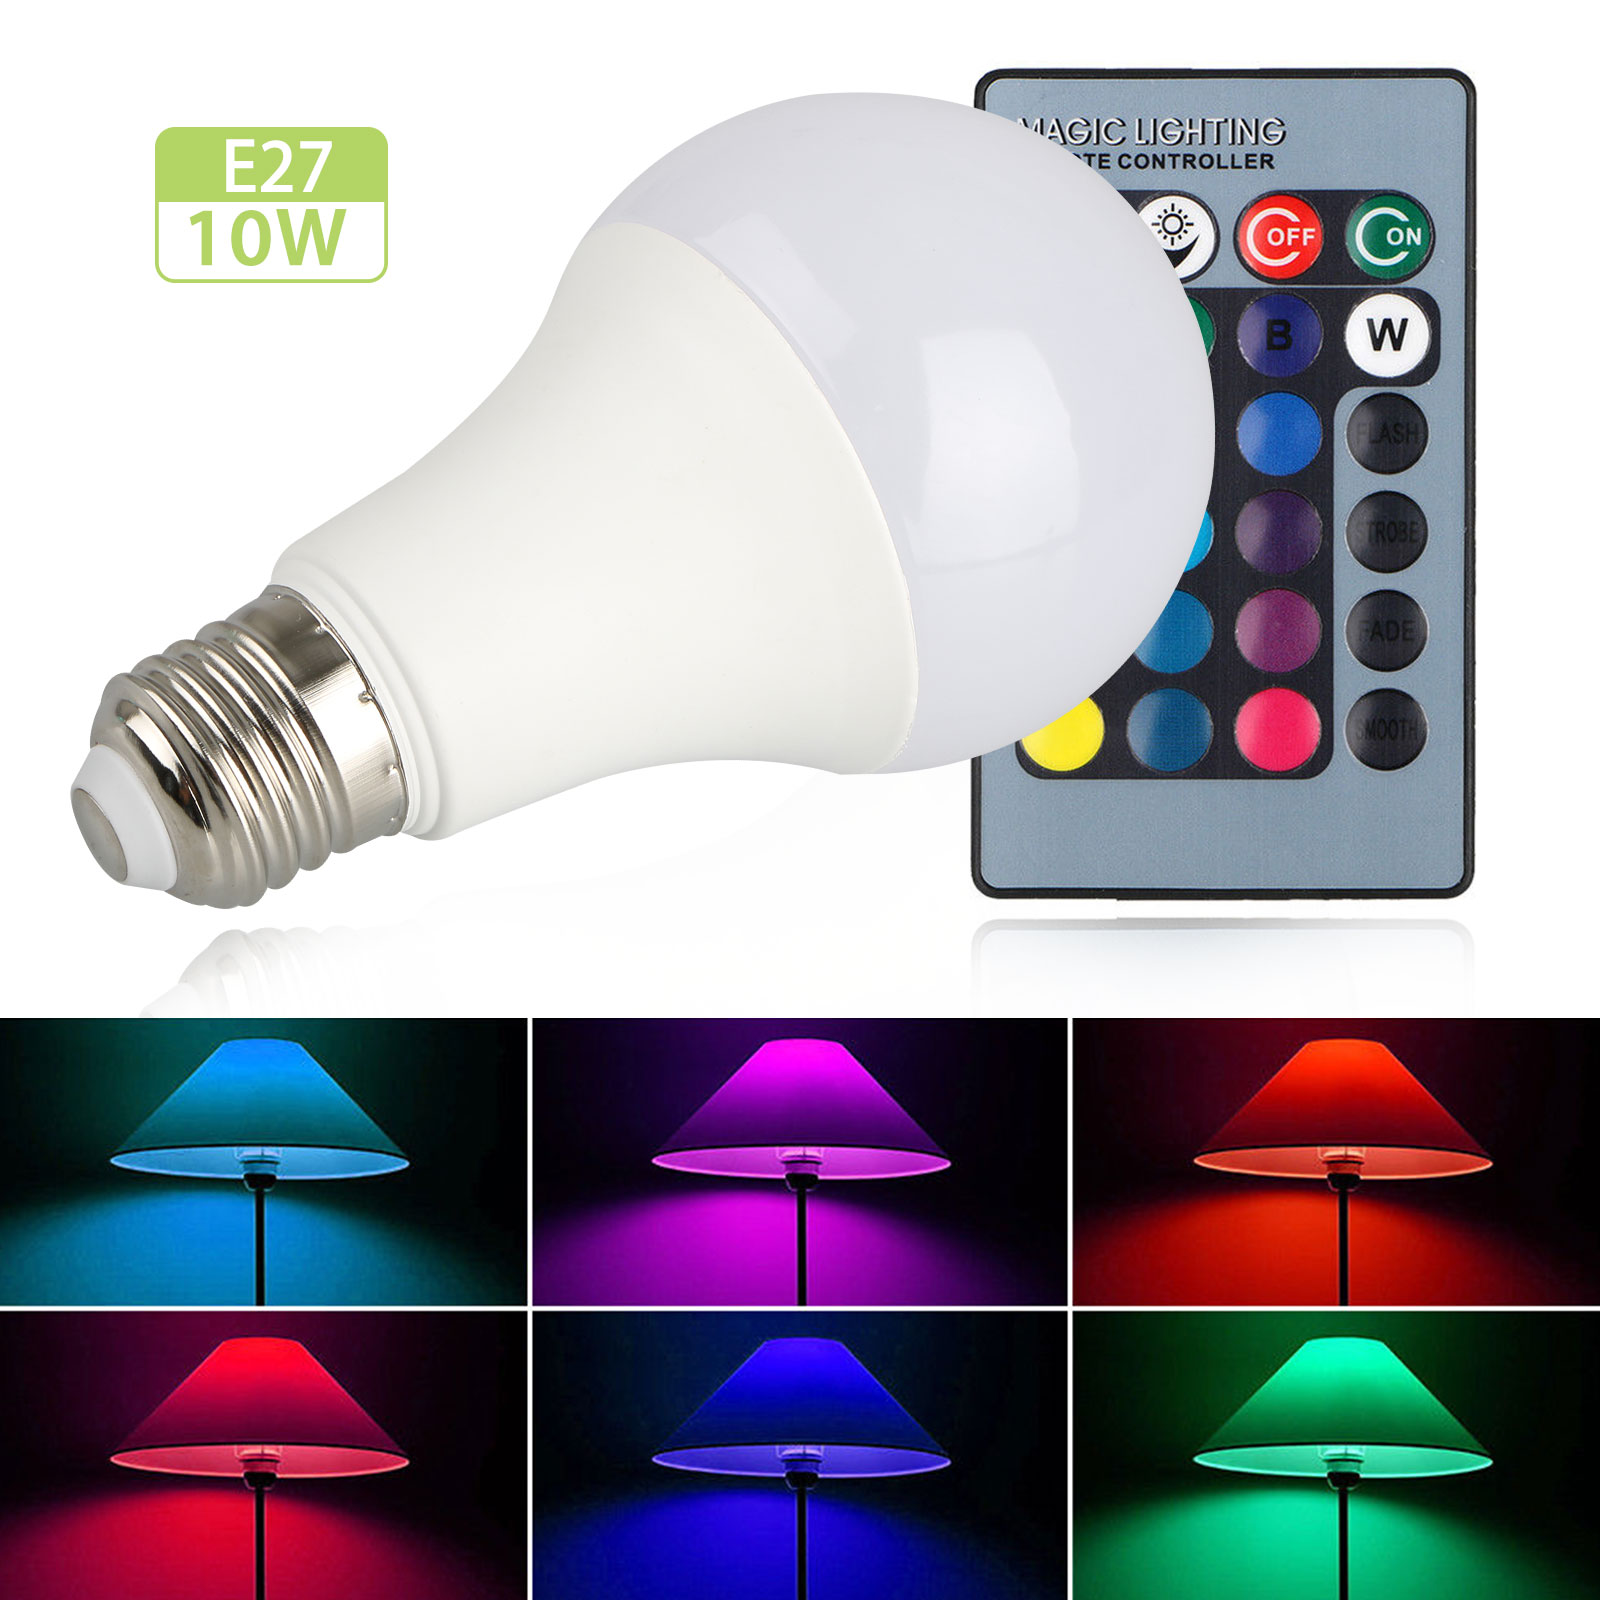 LED Color Changing Light Bulb Dimmable, E27 RGB LED Light Bulbs with IR Remote Control for Living Room Dinning Room Decoration Bar Party KTV Mood Lighting